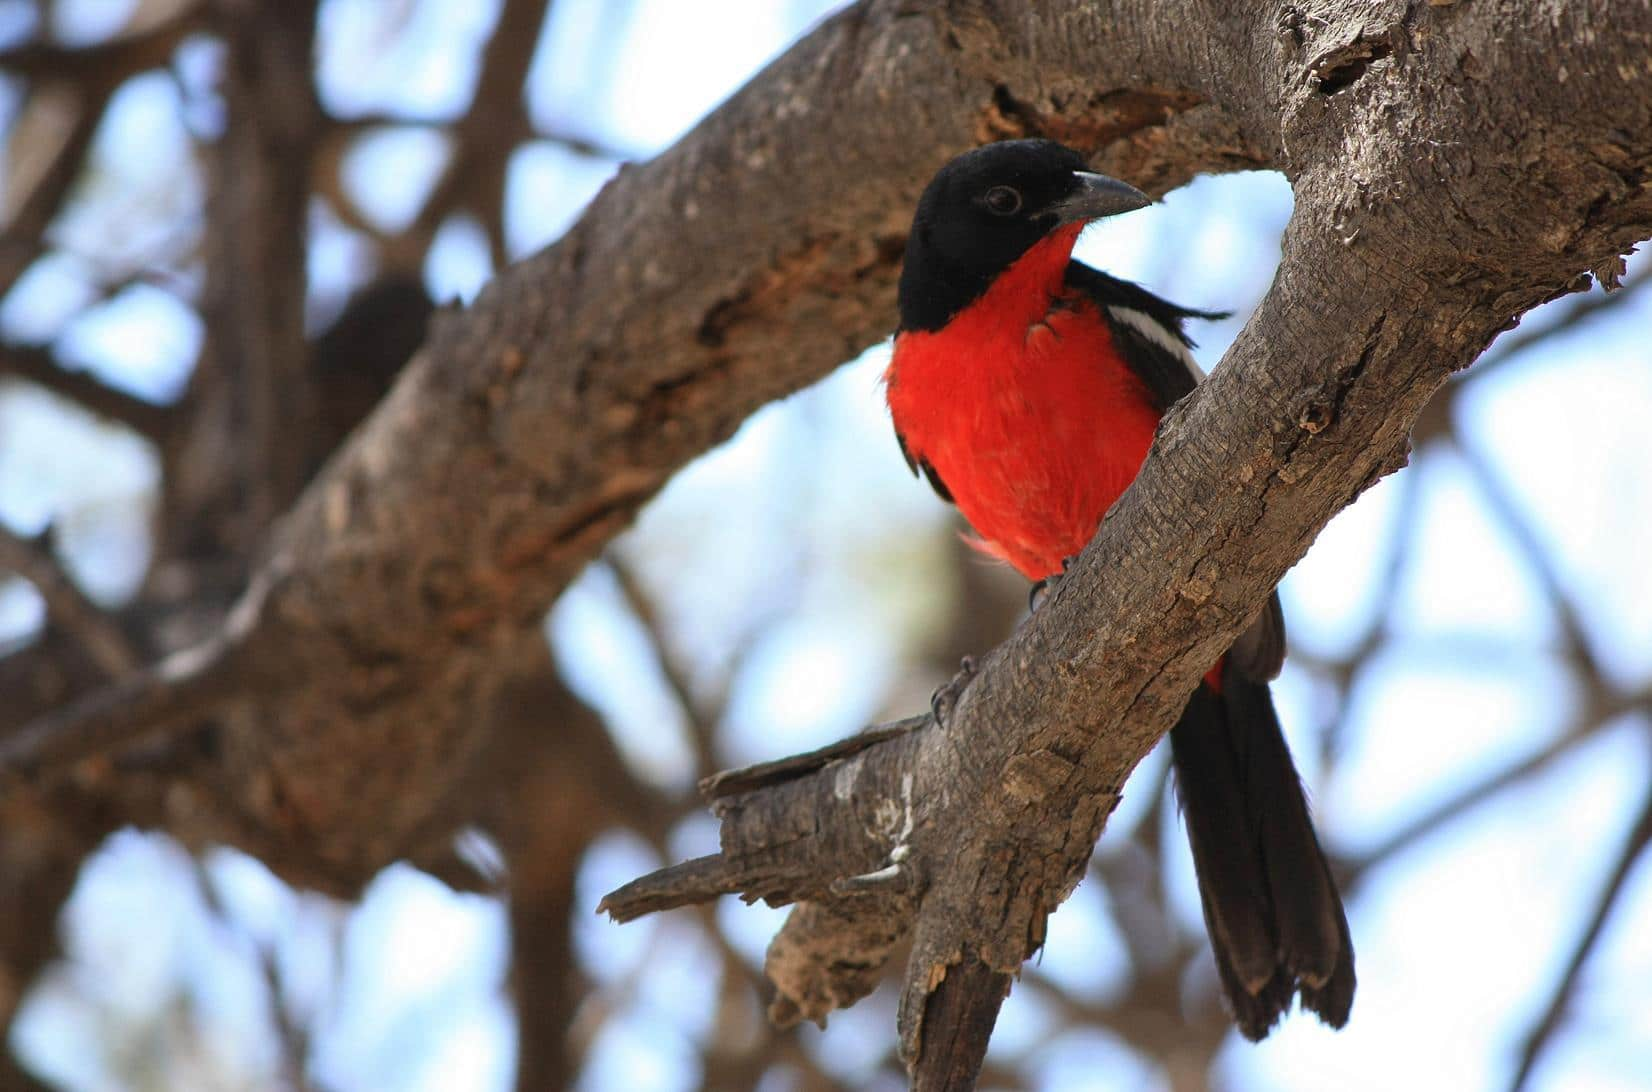 A Crimson-breasted shrike.